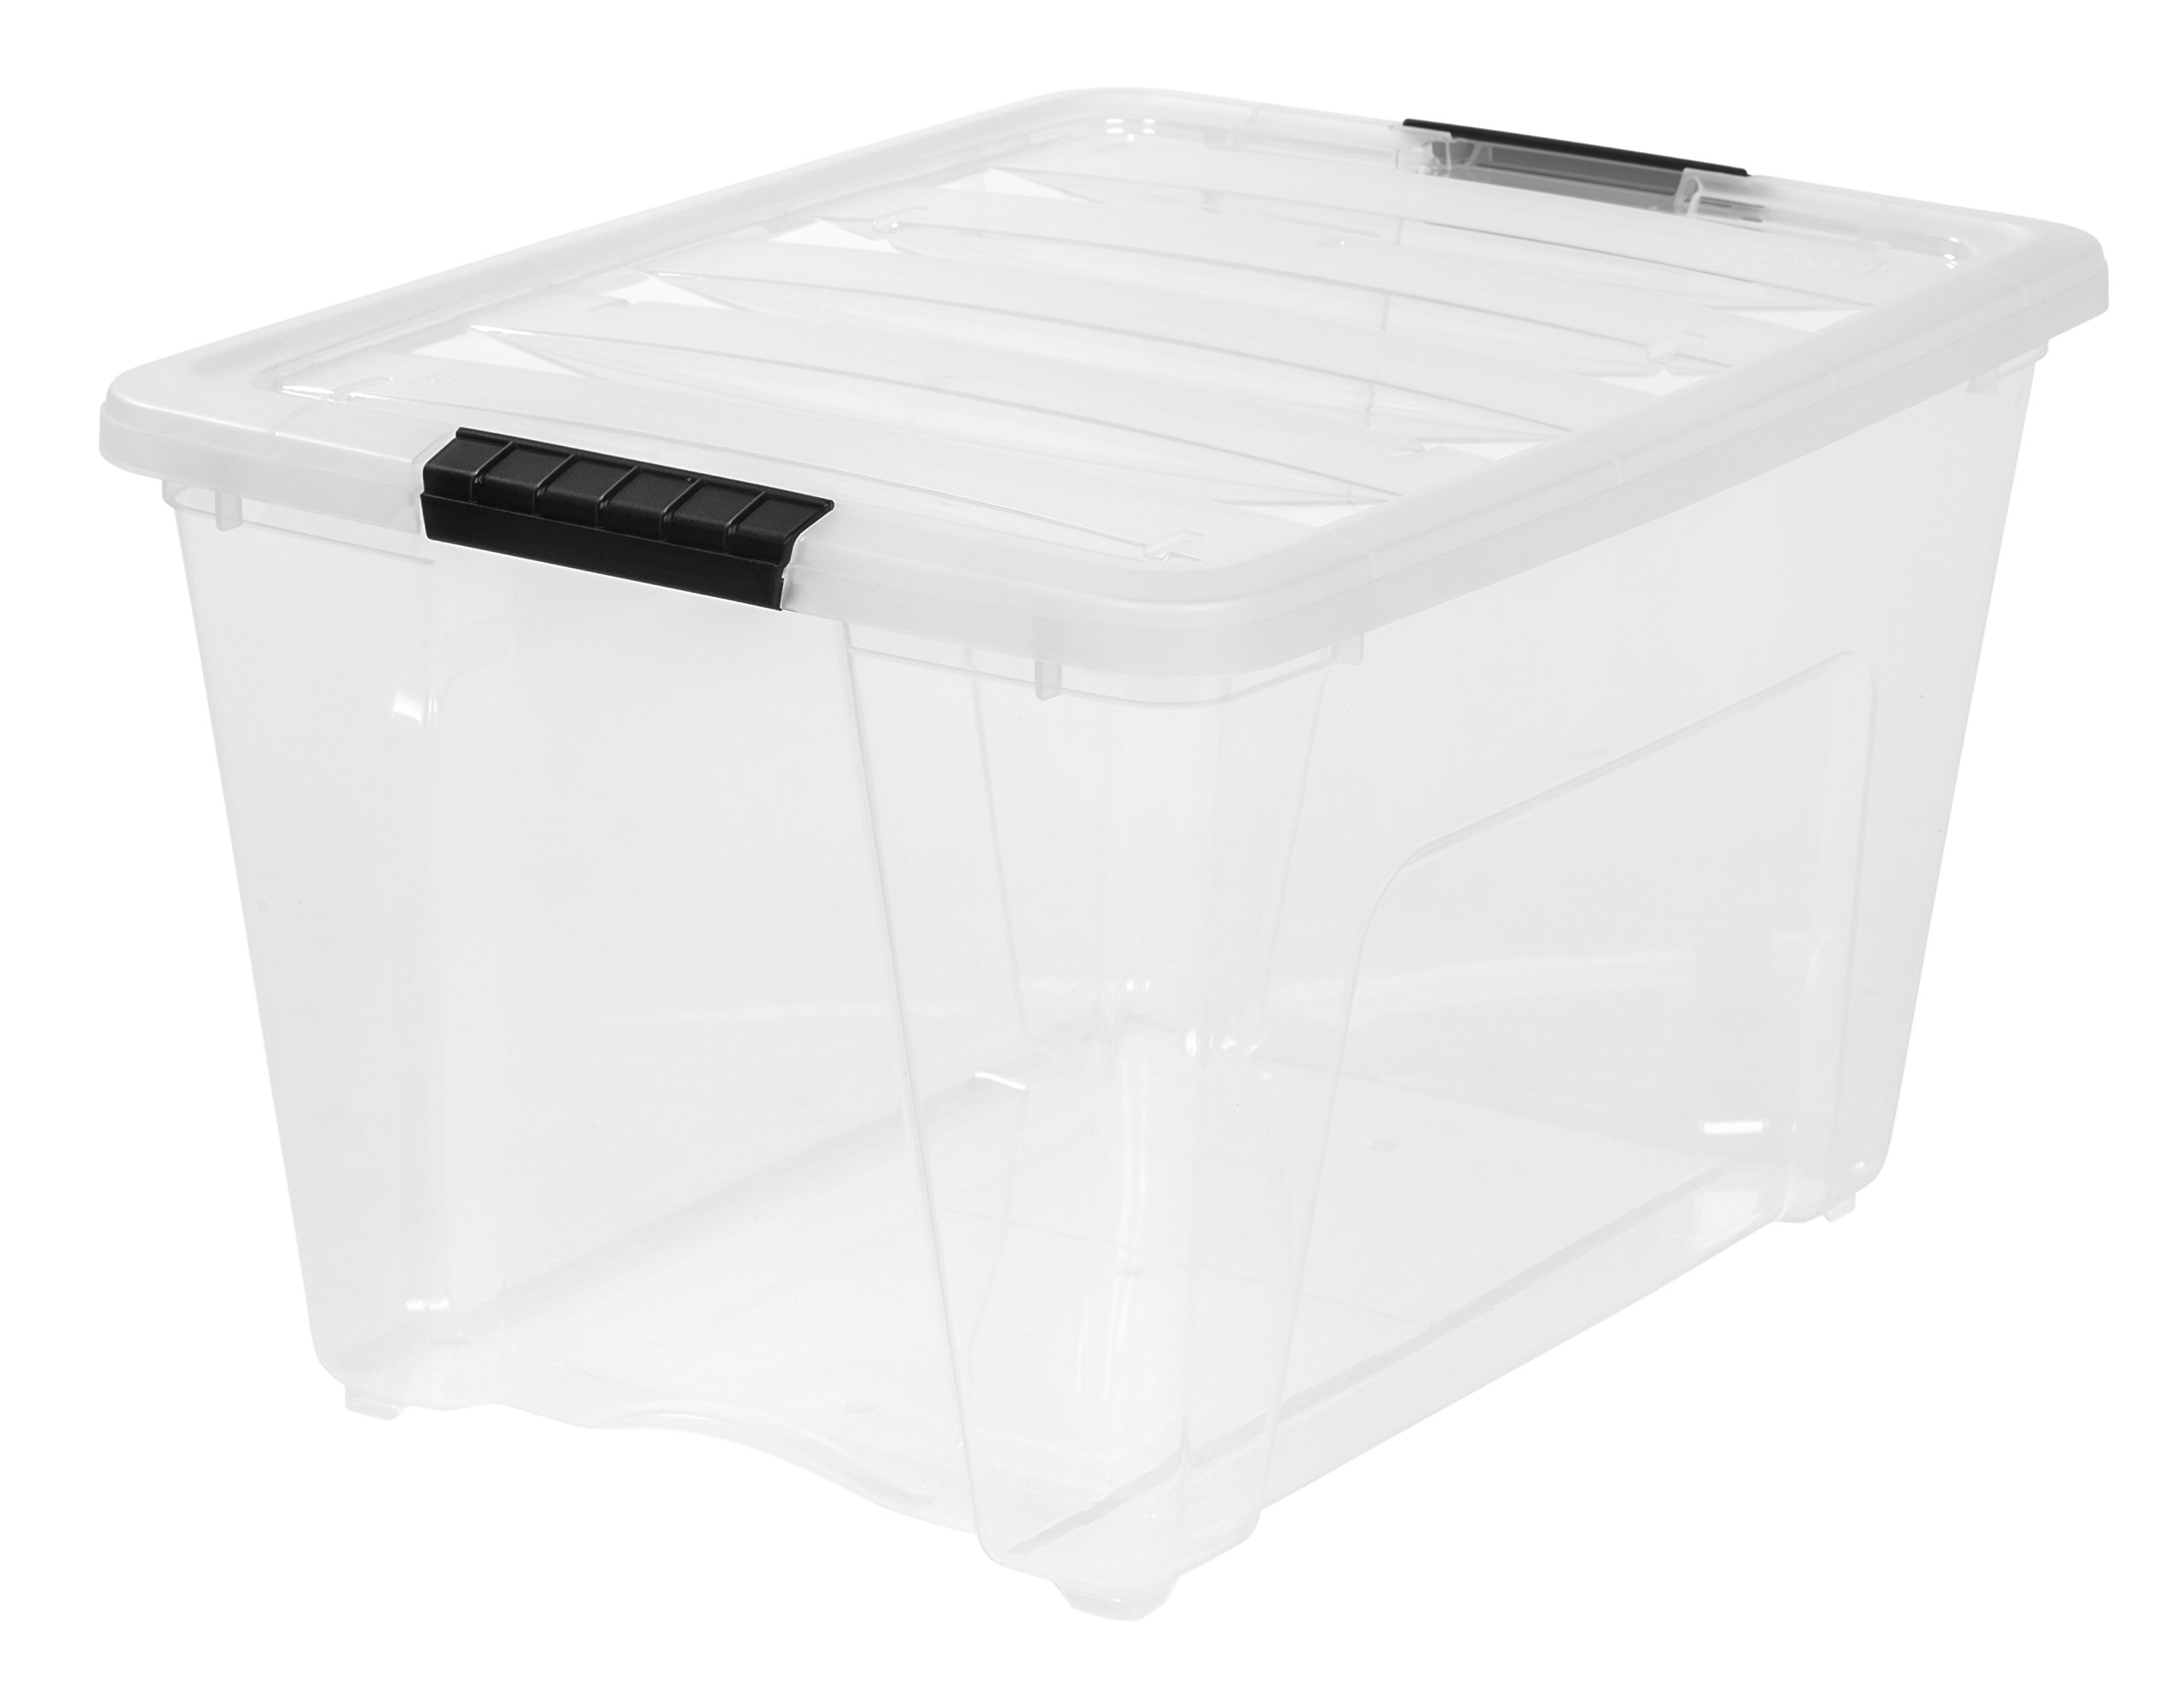 53 quart large plastic storage tote container clear stackable box with lid bin 762016444086 ebay. Black Bedroom Furniture Sets. Home Design Ideas